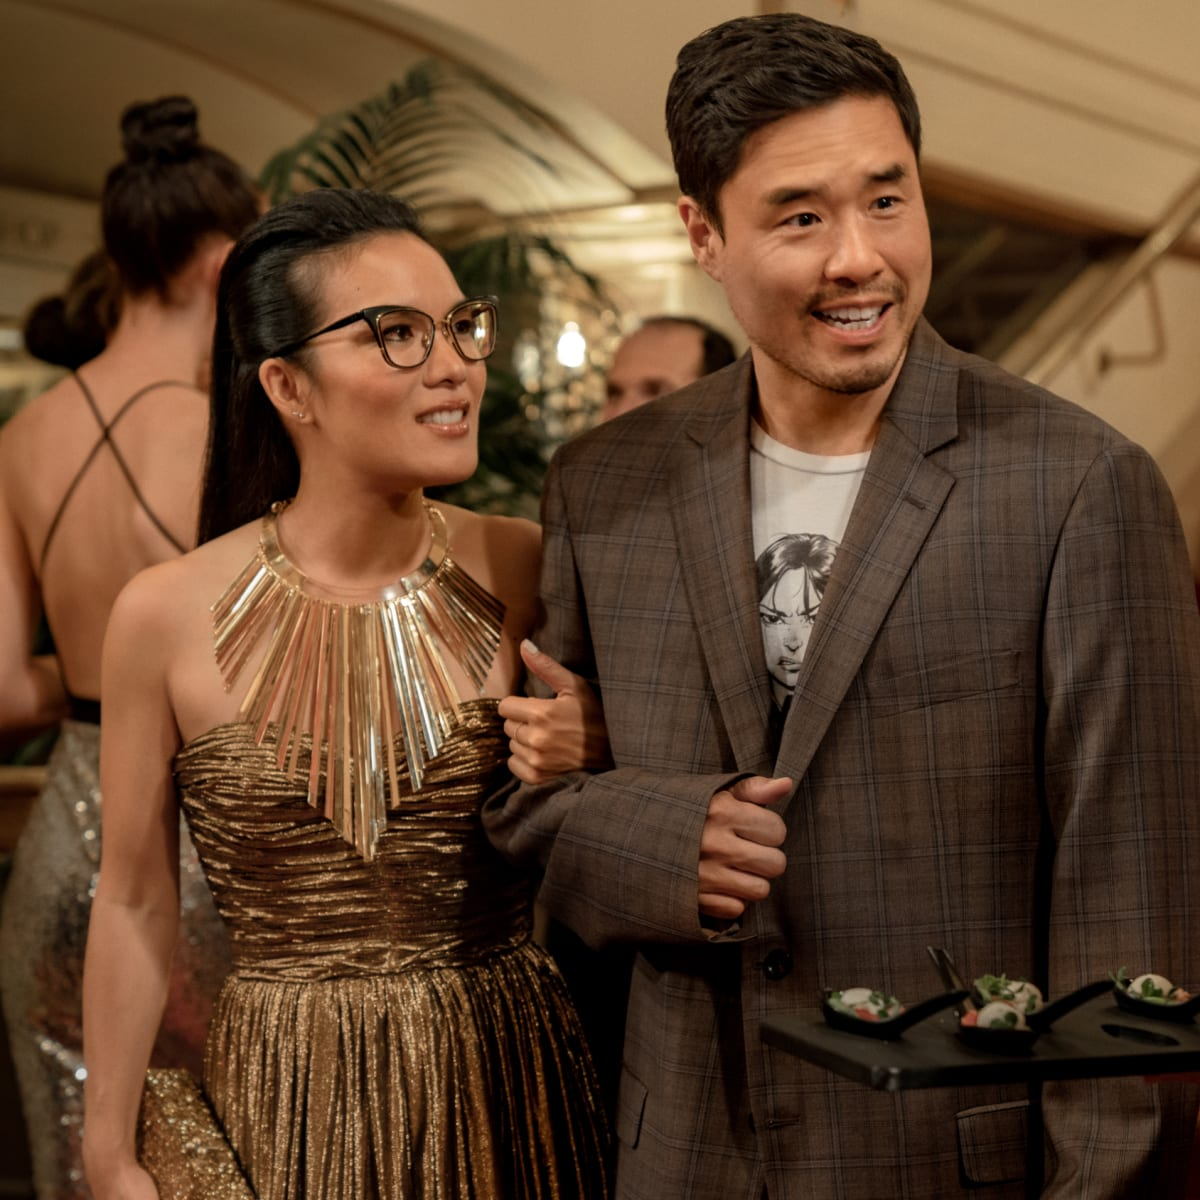 Ali Wong Wears The Row Isabel Marant And Michael Kors In Always Be My Maybe On Netflix Fashionista These information answers detailedly about what to visit in new york. ali wong wears the row isabel marant